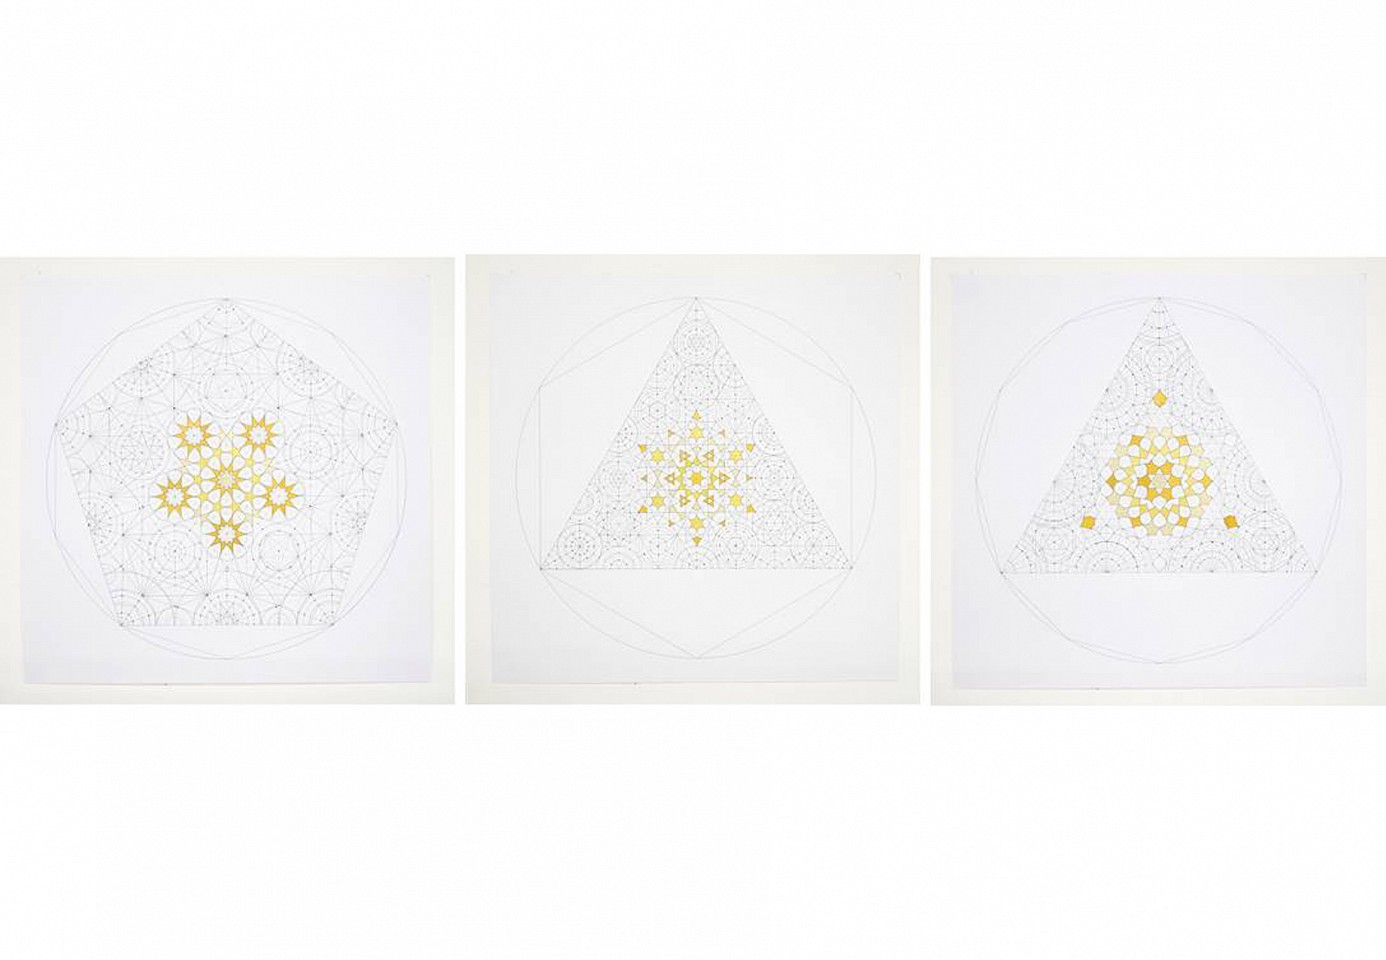 "<p><span class=""viewer-caption-artist"">Dana Awartani</span></p> <p><span class=""viewer-caption-title""><i>The Platonic Solid Duals Series</i></span>, <span class=""viewer-caption-year"">2016</span></p> <p><span class=""viewer-caption-media"">Wood, copper and glass</span></p> <p><span class=""viewer-caption-description"">From left to right: Dodecahedron Within a Icosahedron, Octahedron Within a Cube and Icosahedron Within a Dodecahedron </span></p> <p><span class=""viewer-caption-inventory"">DAN0106</span></p> <p><span class=""viewer-caption-aux""></span></p>"